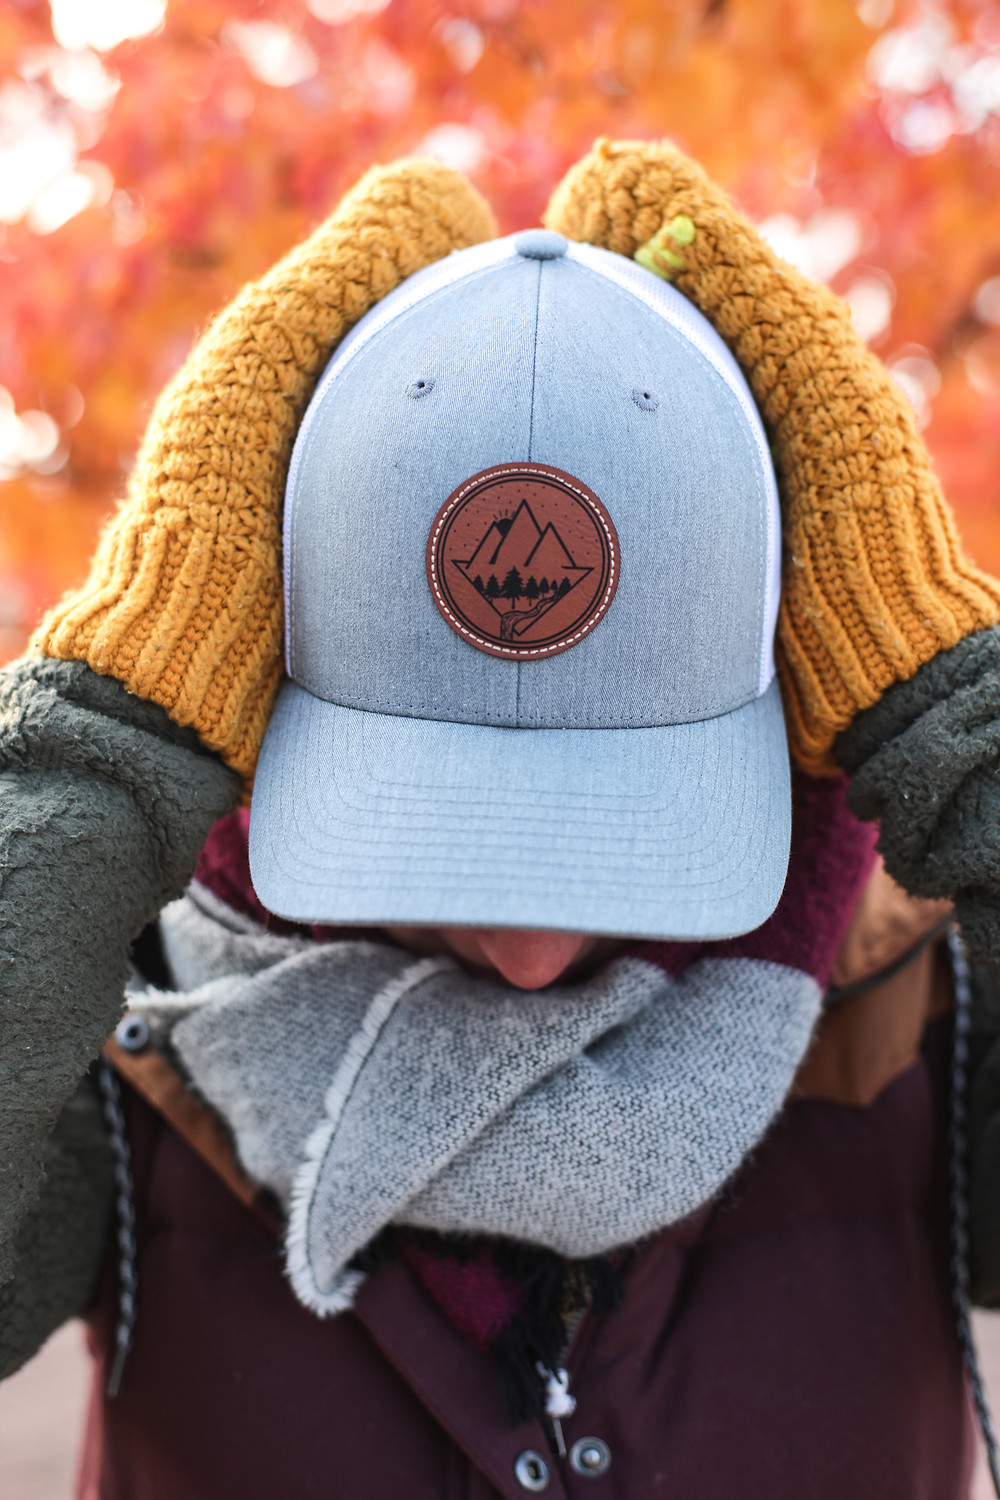 The hats we made are a perfect gift idea for the ultimate adventurer!